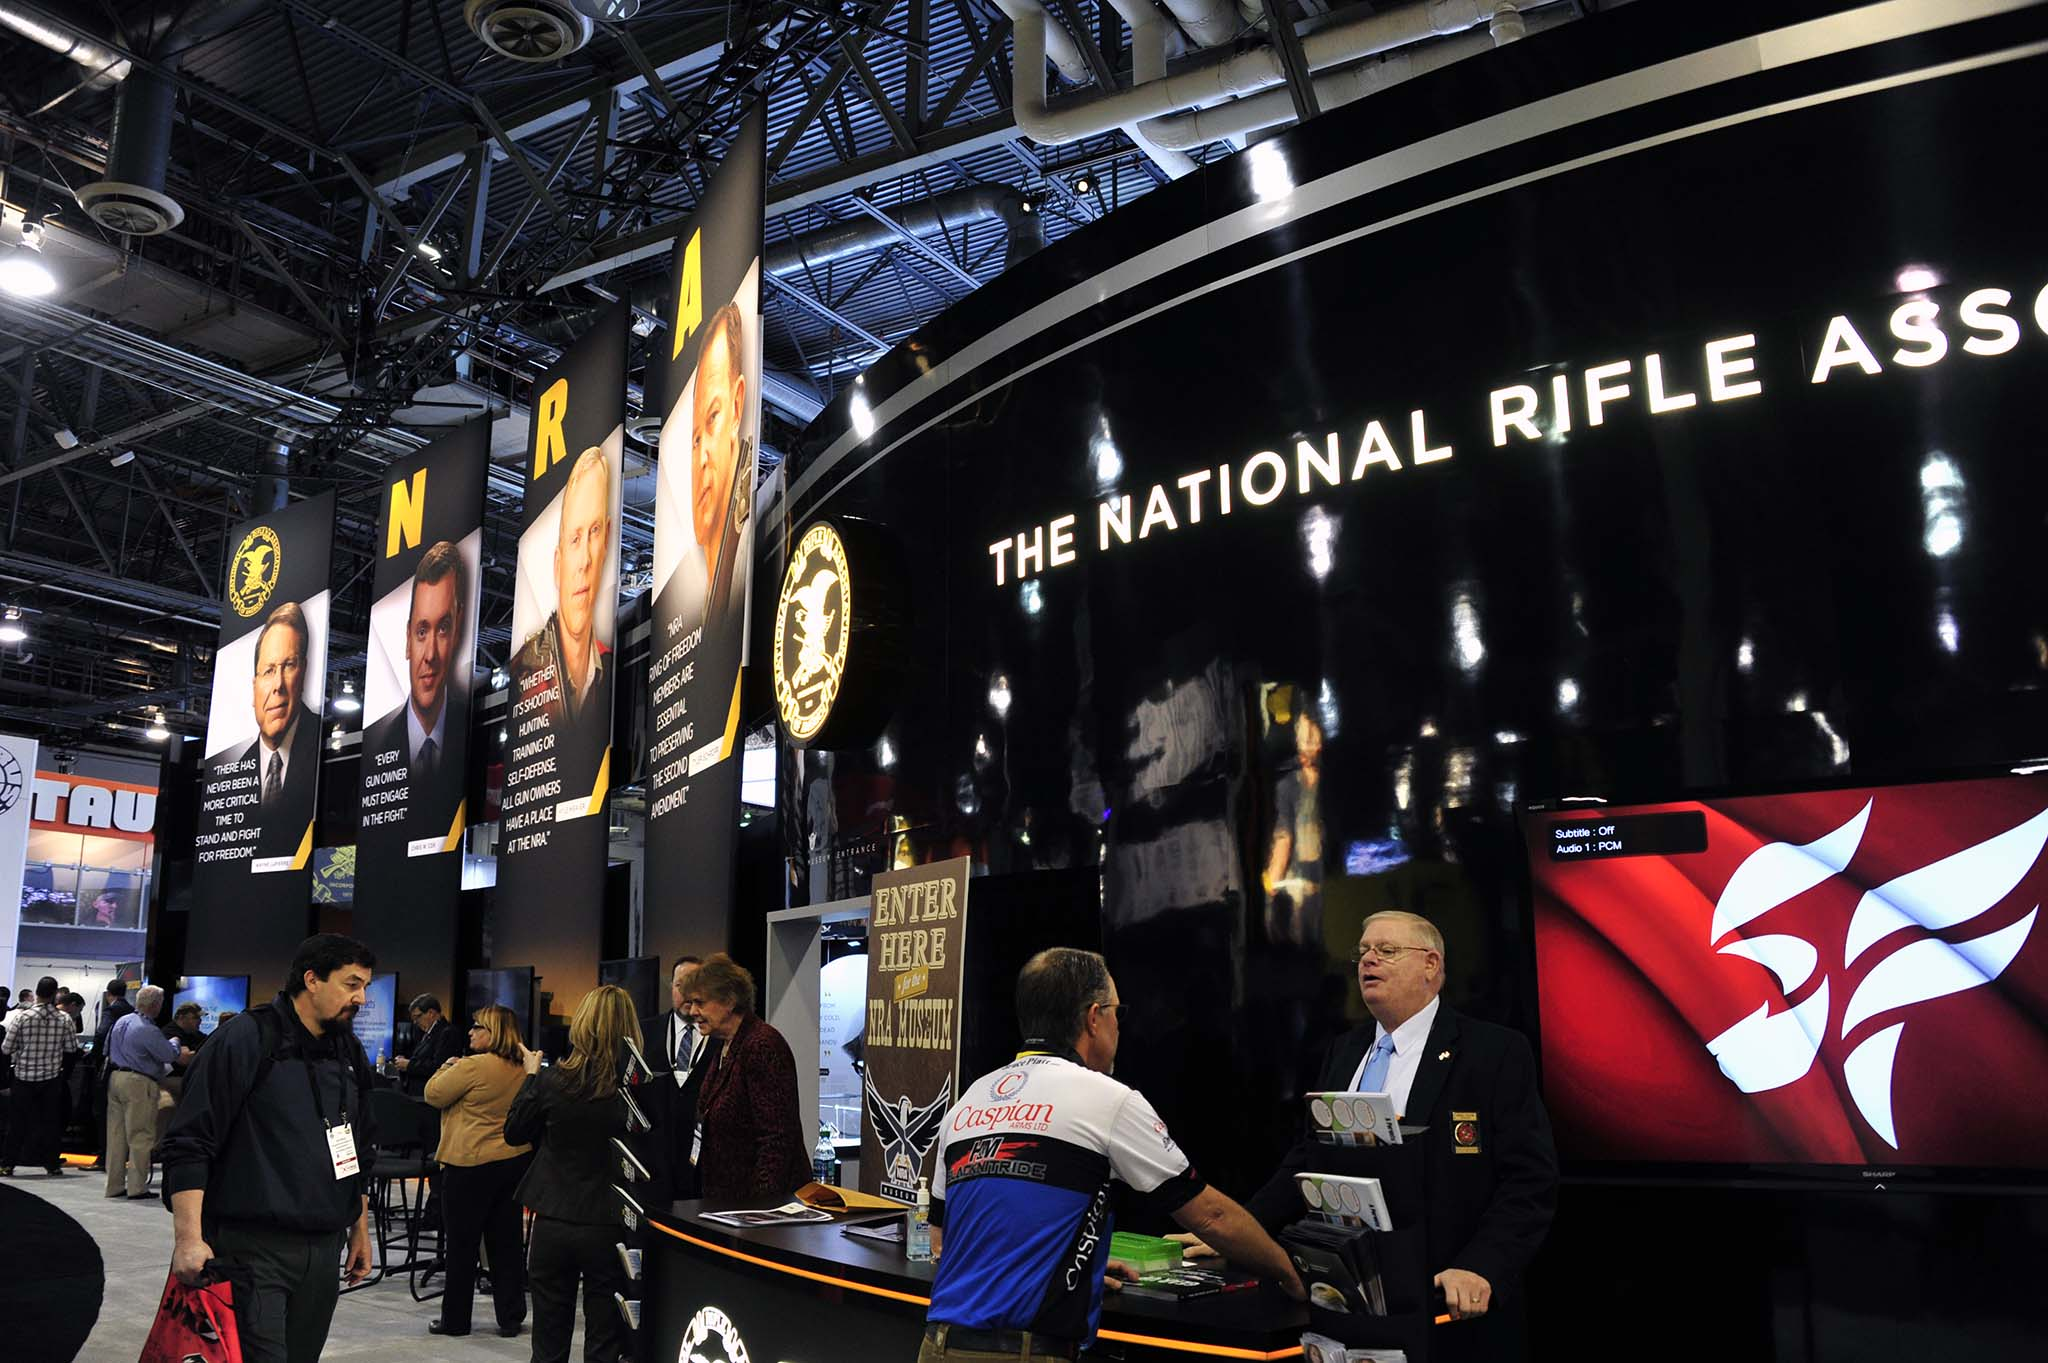 Messestand der NRA